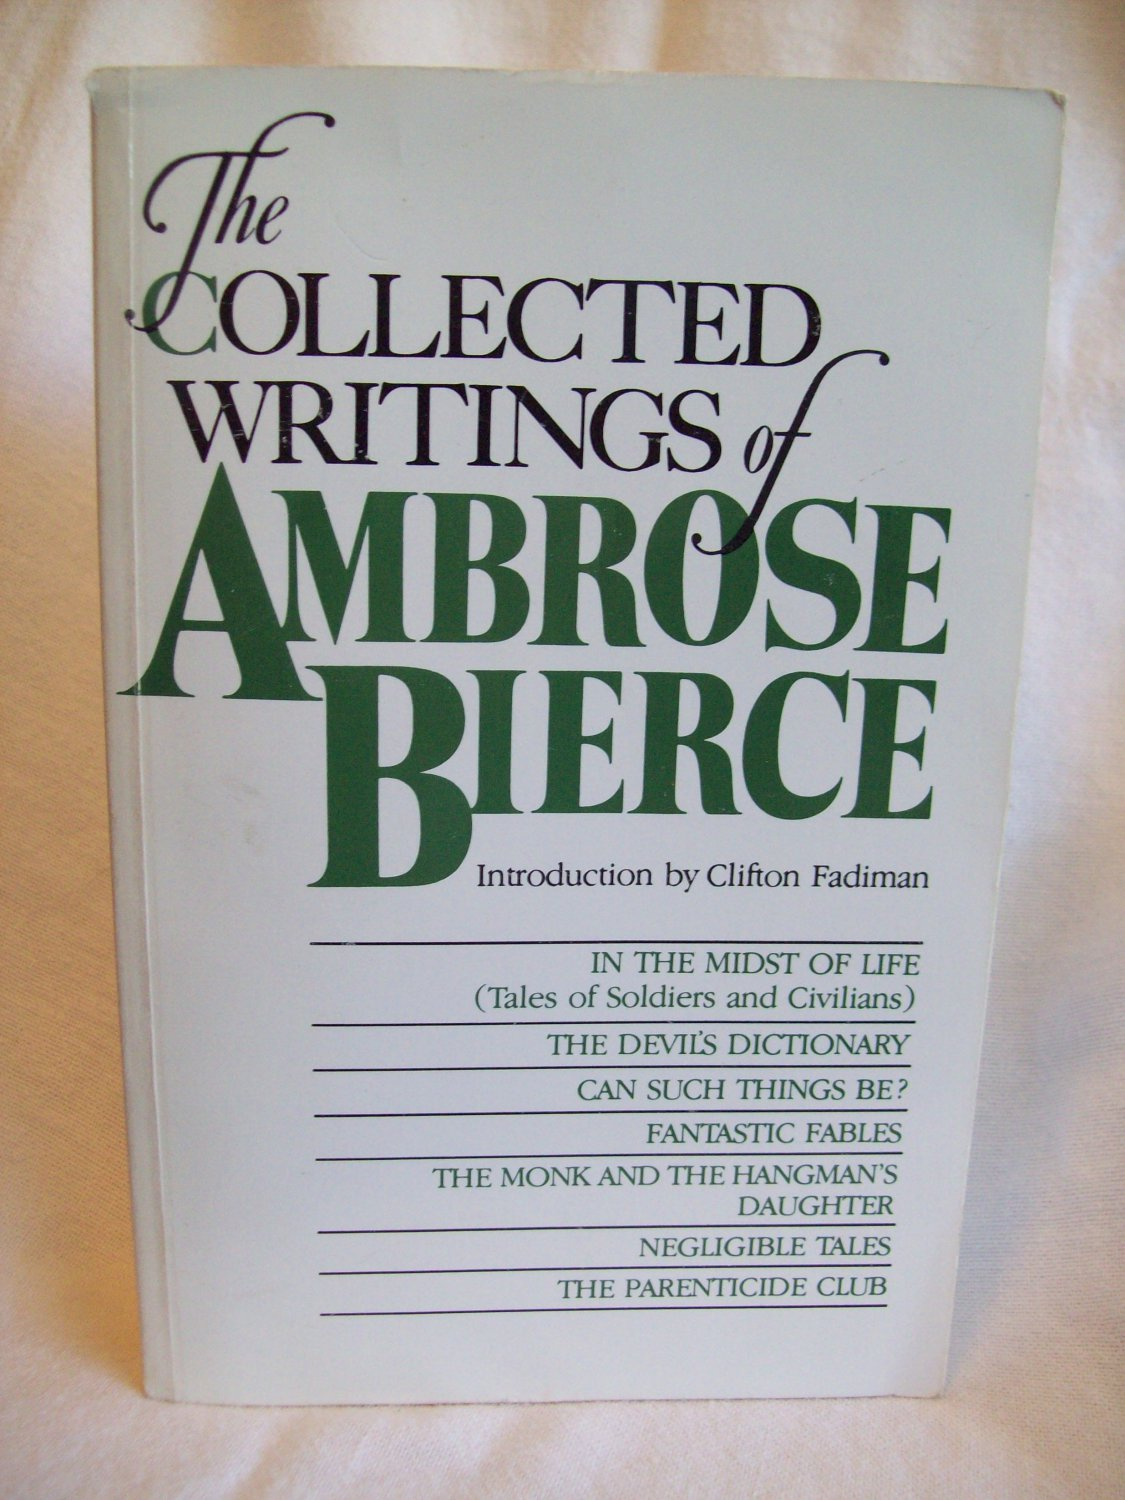 "an introduction to ambrose bierses an occurrence at owl creek bridge We will write a custom essay sample on ""an occurrence at owl creek bridge"" by ambrose bierce specifically for you for only $1638 $139/page."